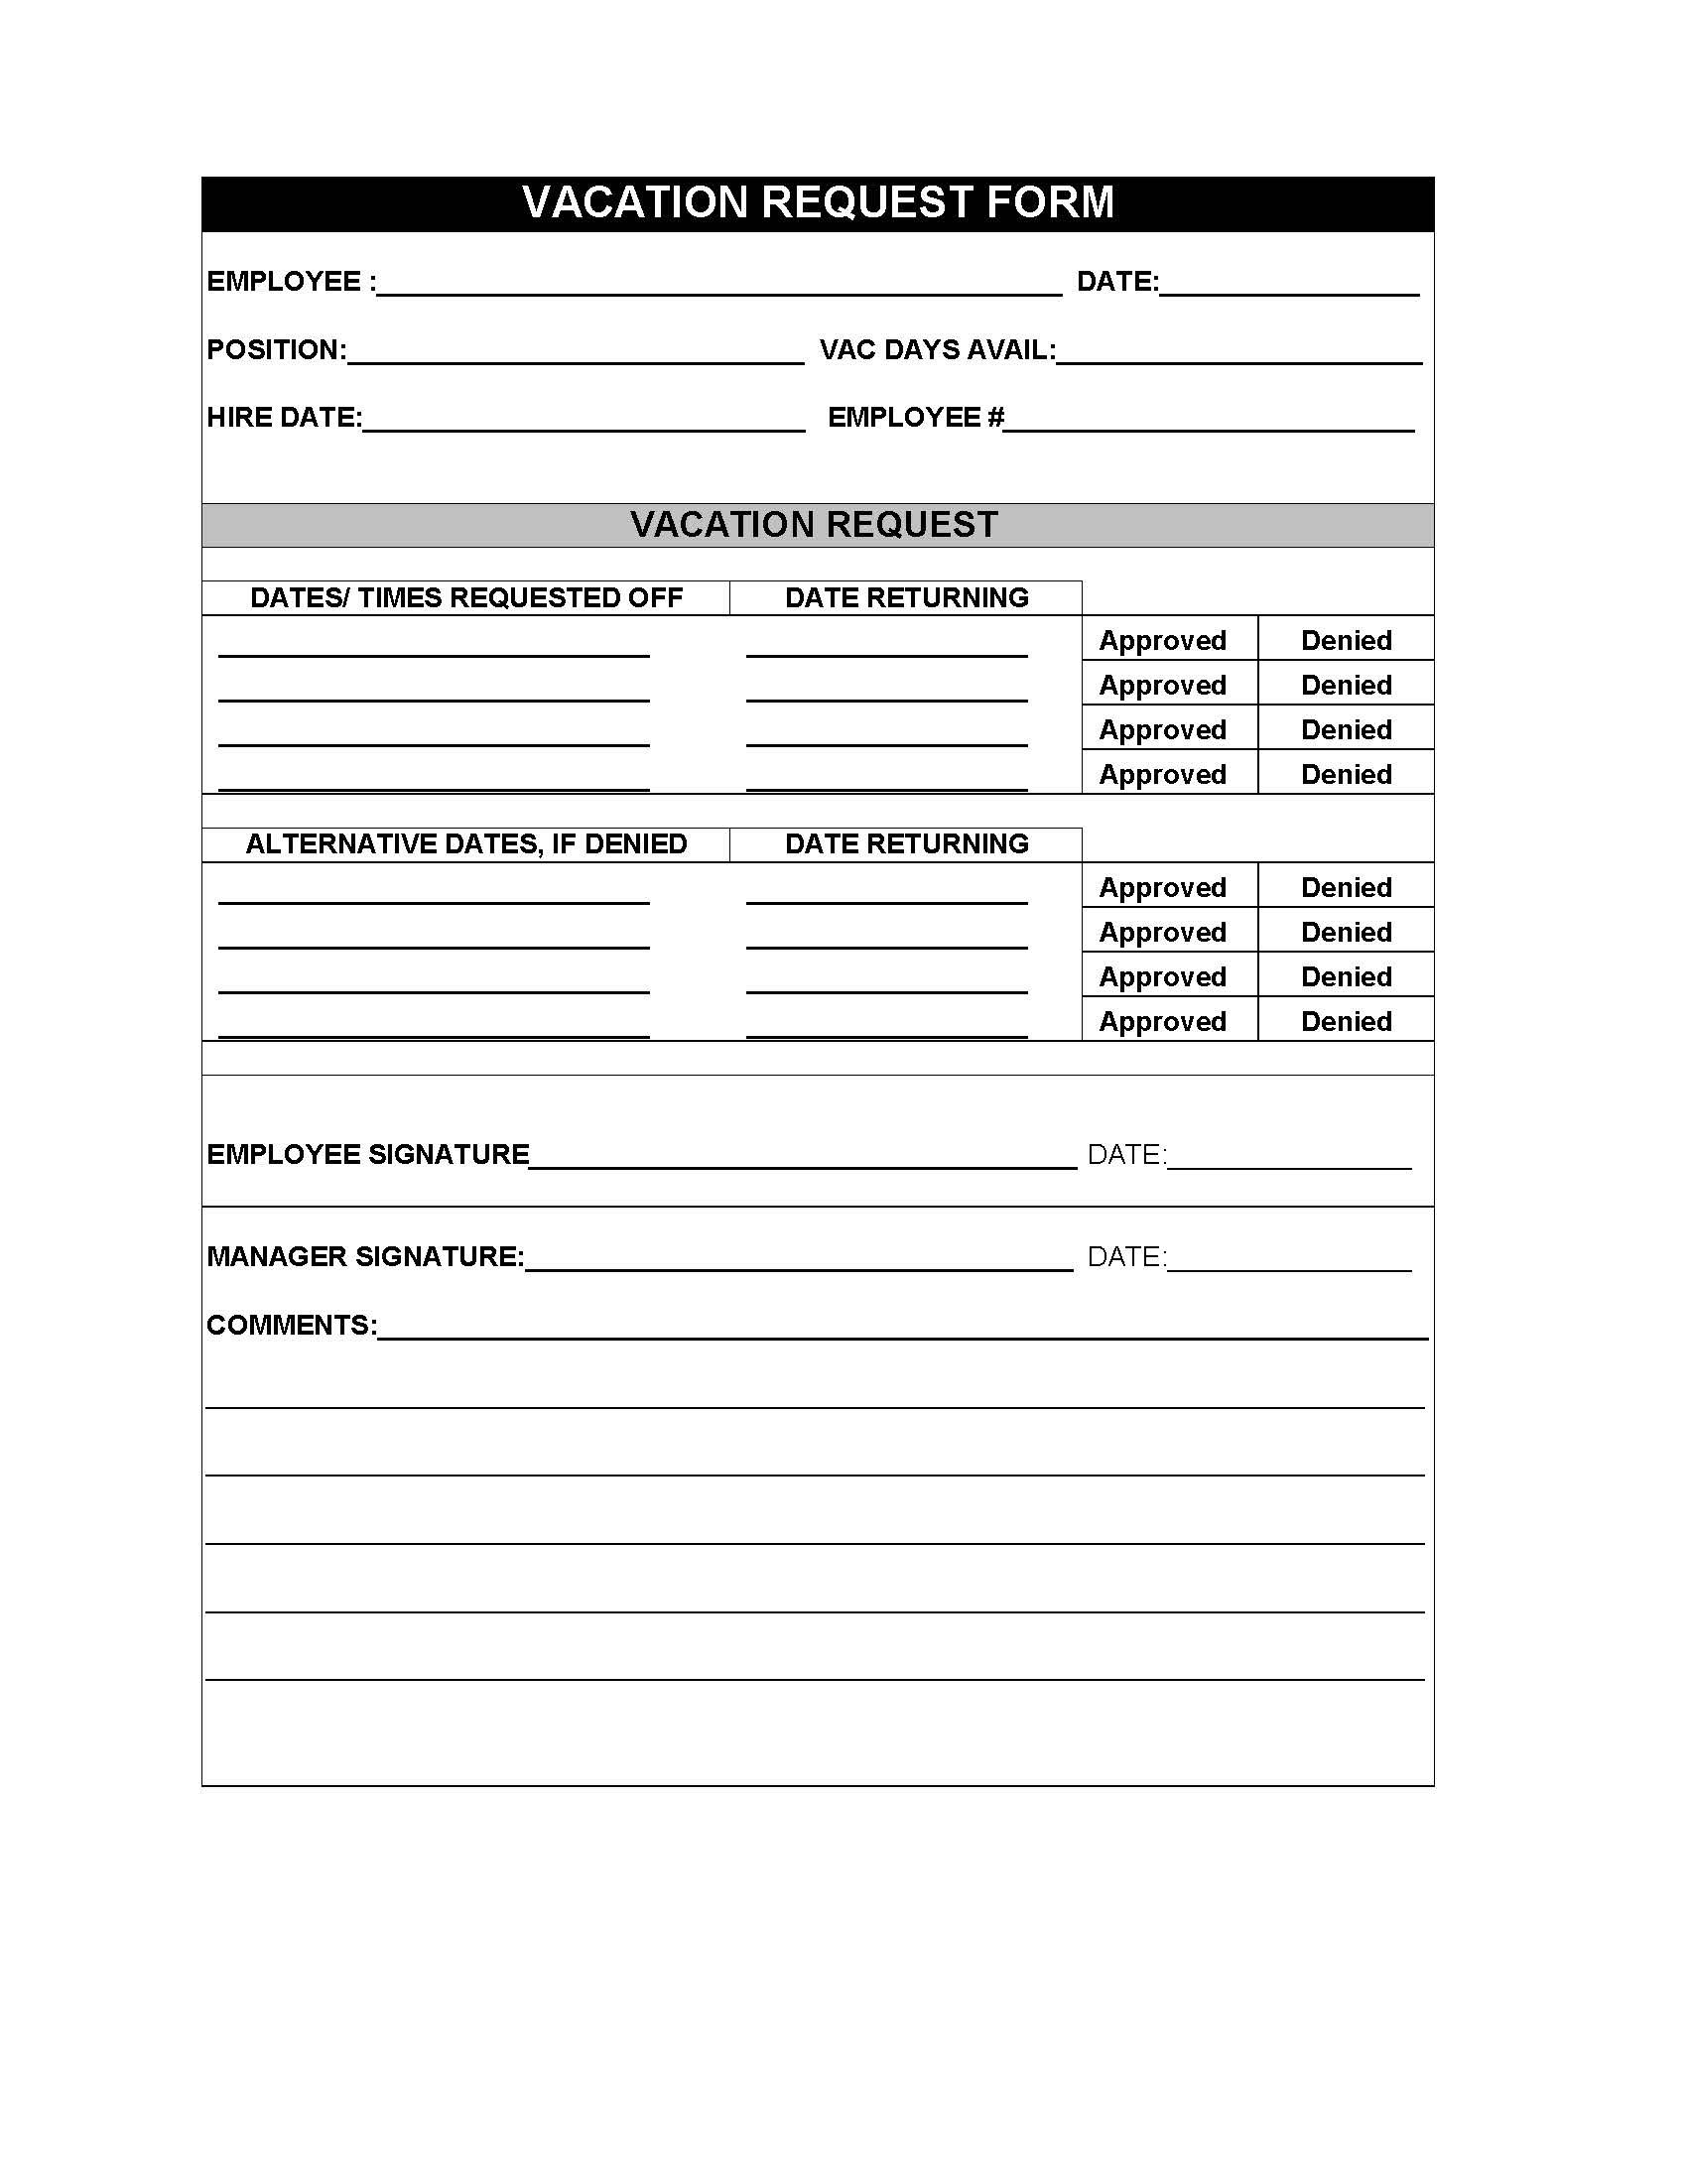 Restaurant employee vacation request form – Vacation Request Form